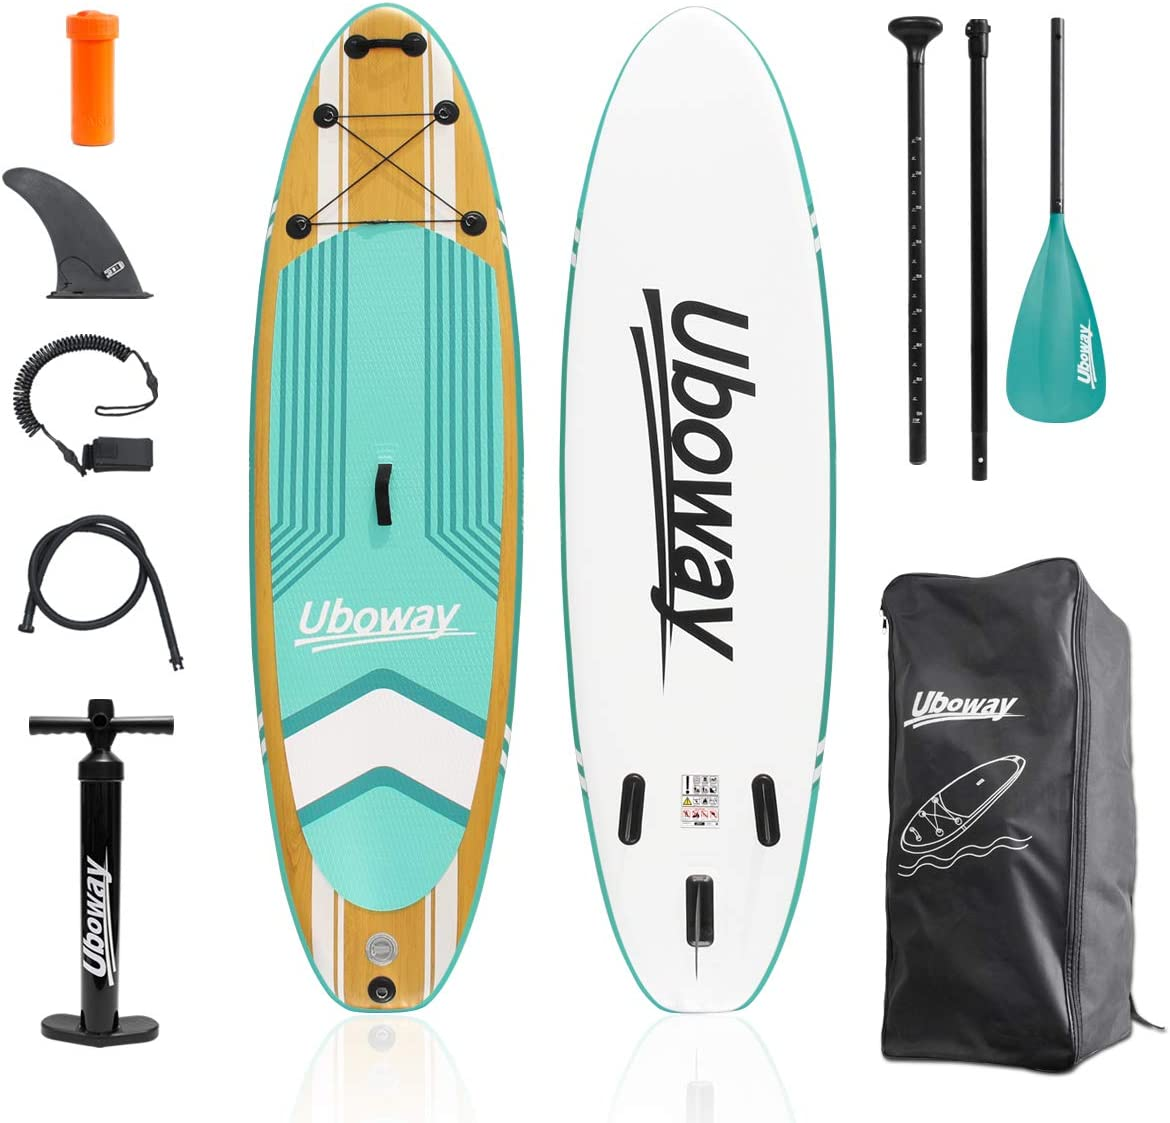 uboway budget inflatable paddle board